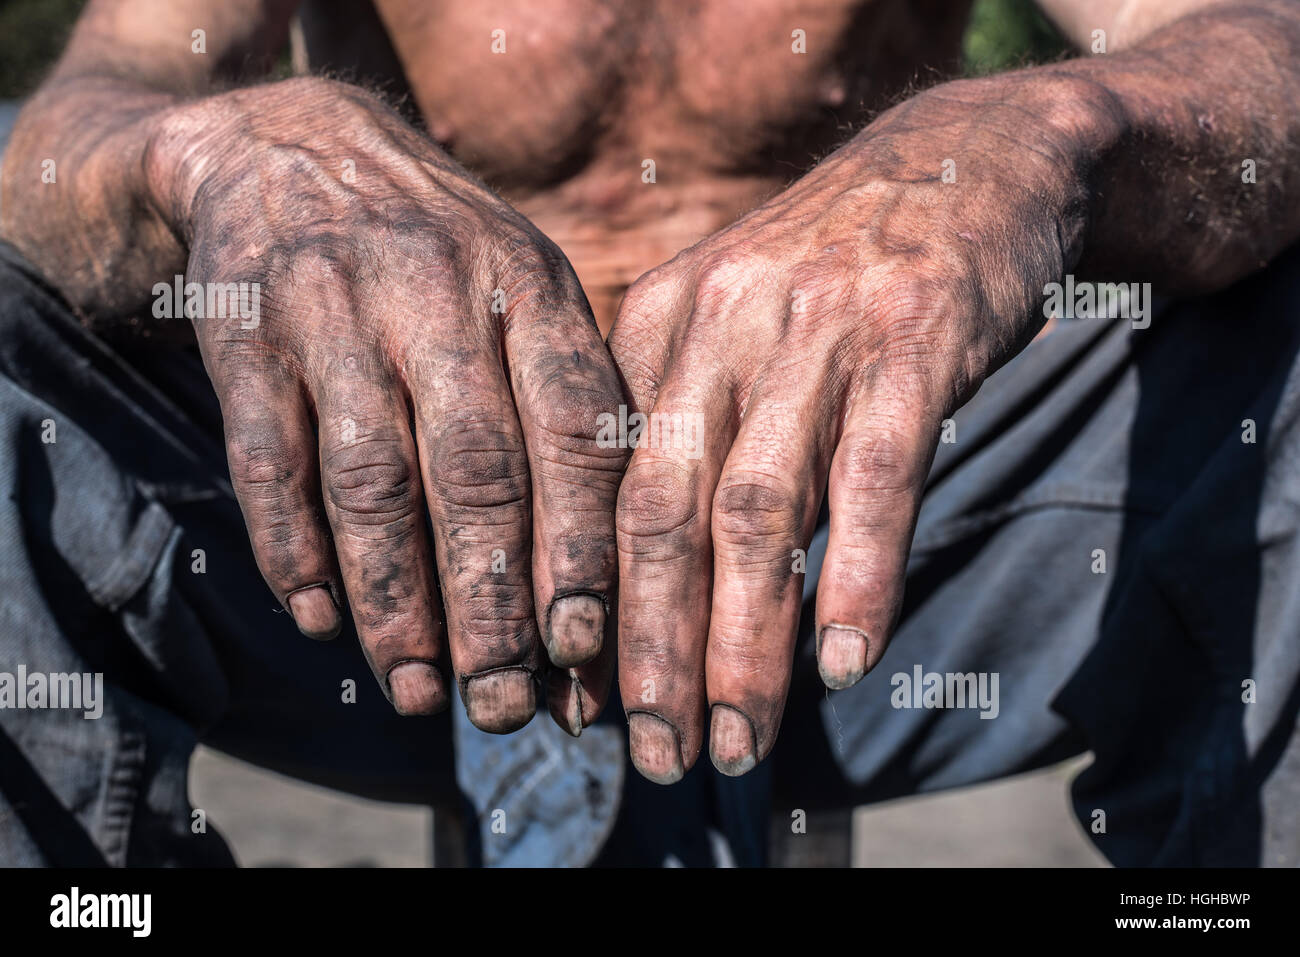 Charcoal-burners worker man with dirty hands. - Stock Image